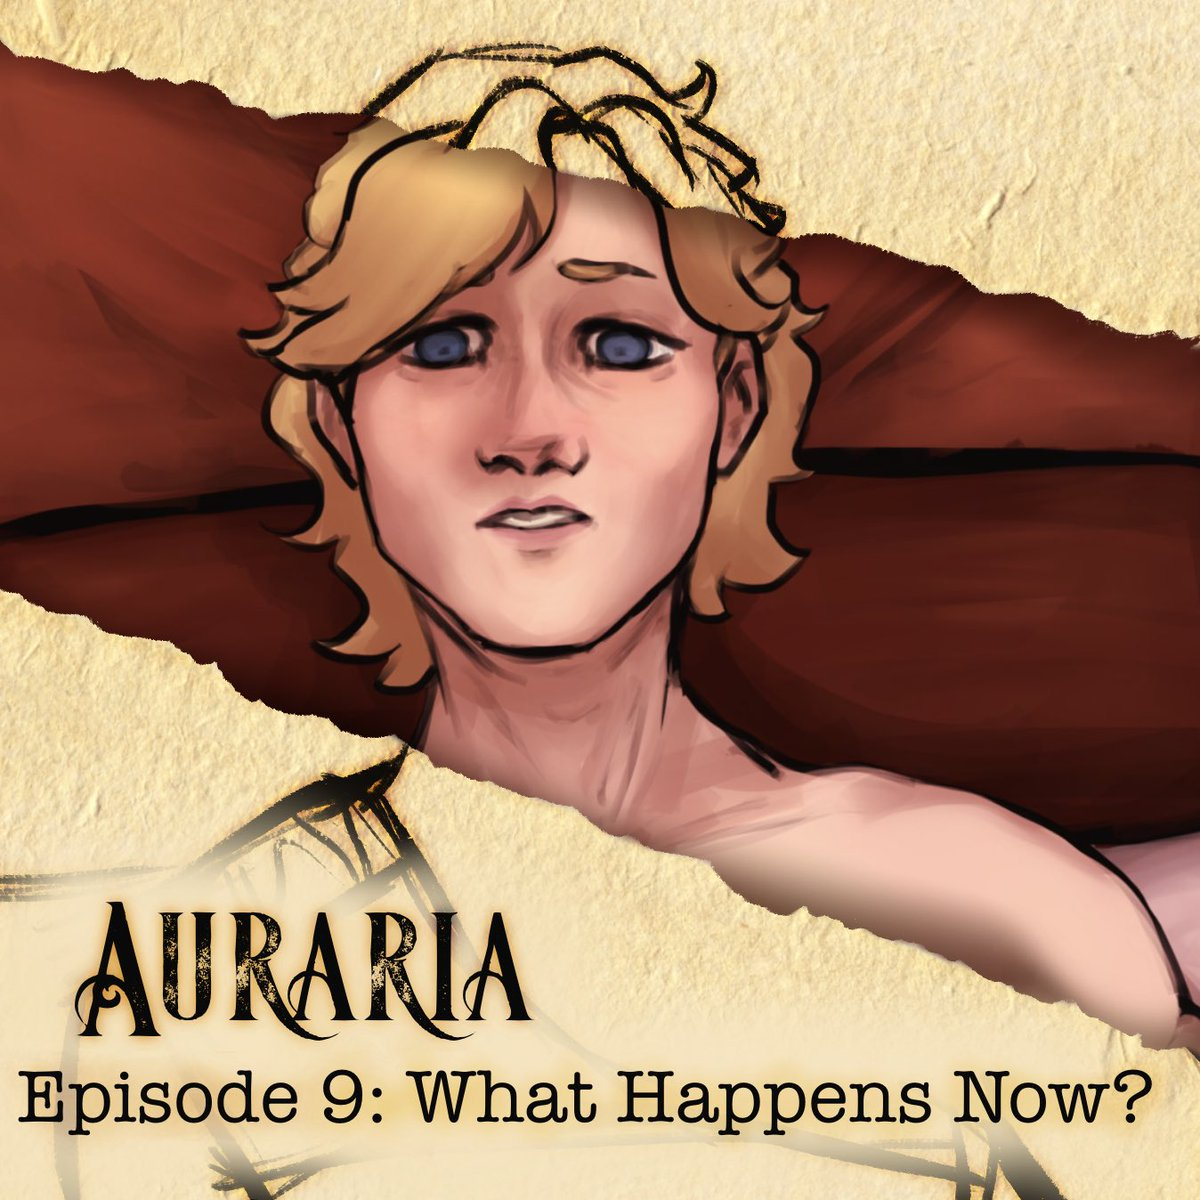 ⚜️AURARIA UPDATE⚜️ EPISODE 9 is now up on Webtoon! Read the update HERE: tinyurl.com/AurariaComic - Aurie opens his eyes. He's got questions. . { #webtoon #webcomic #auraria } Read my webcomic today, Pokémon day!